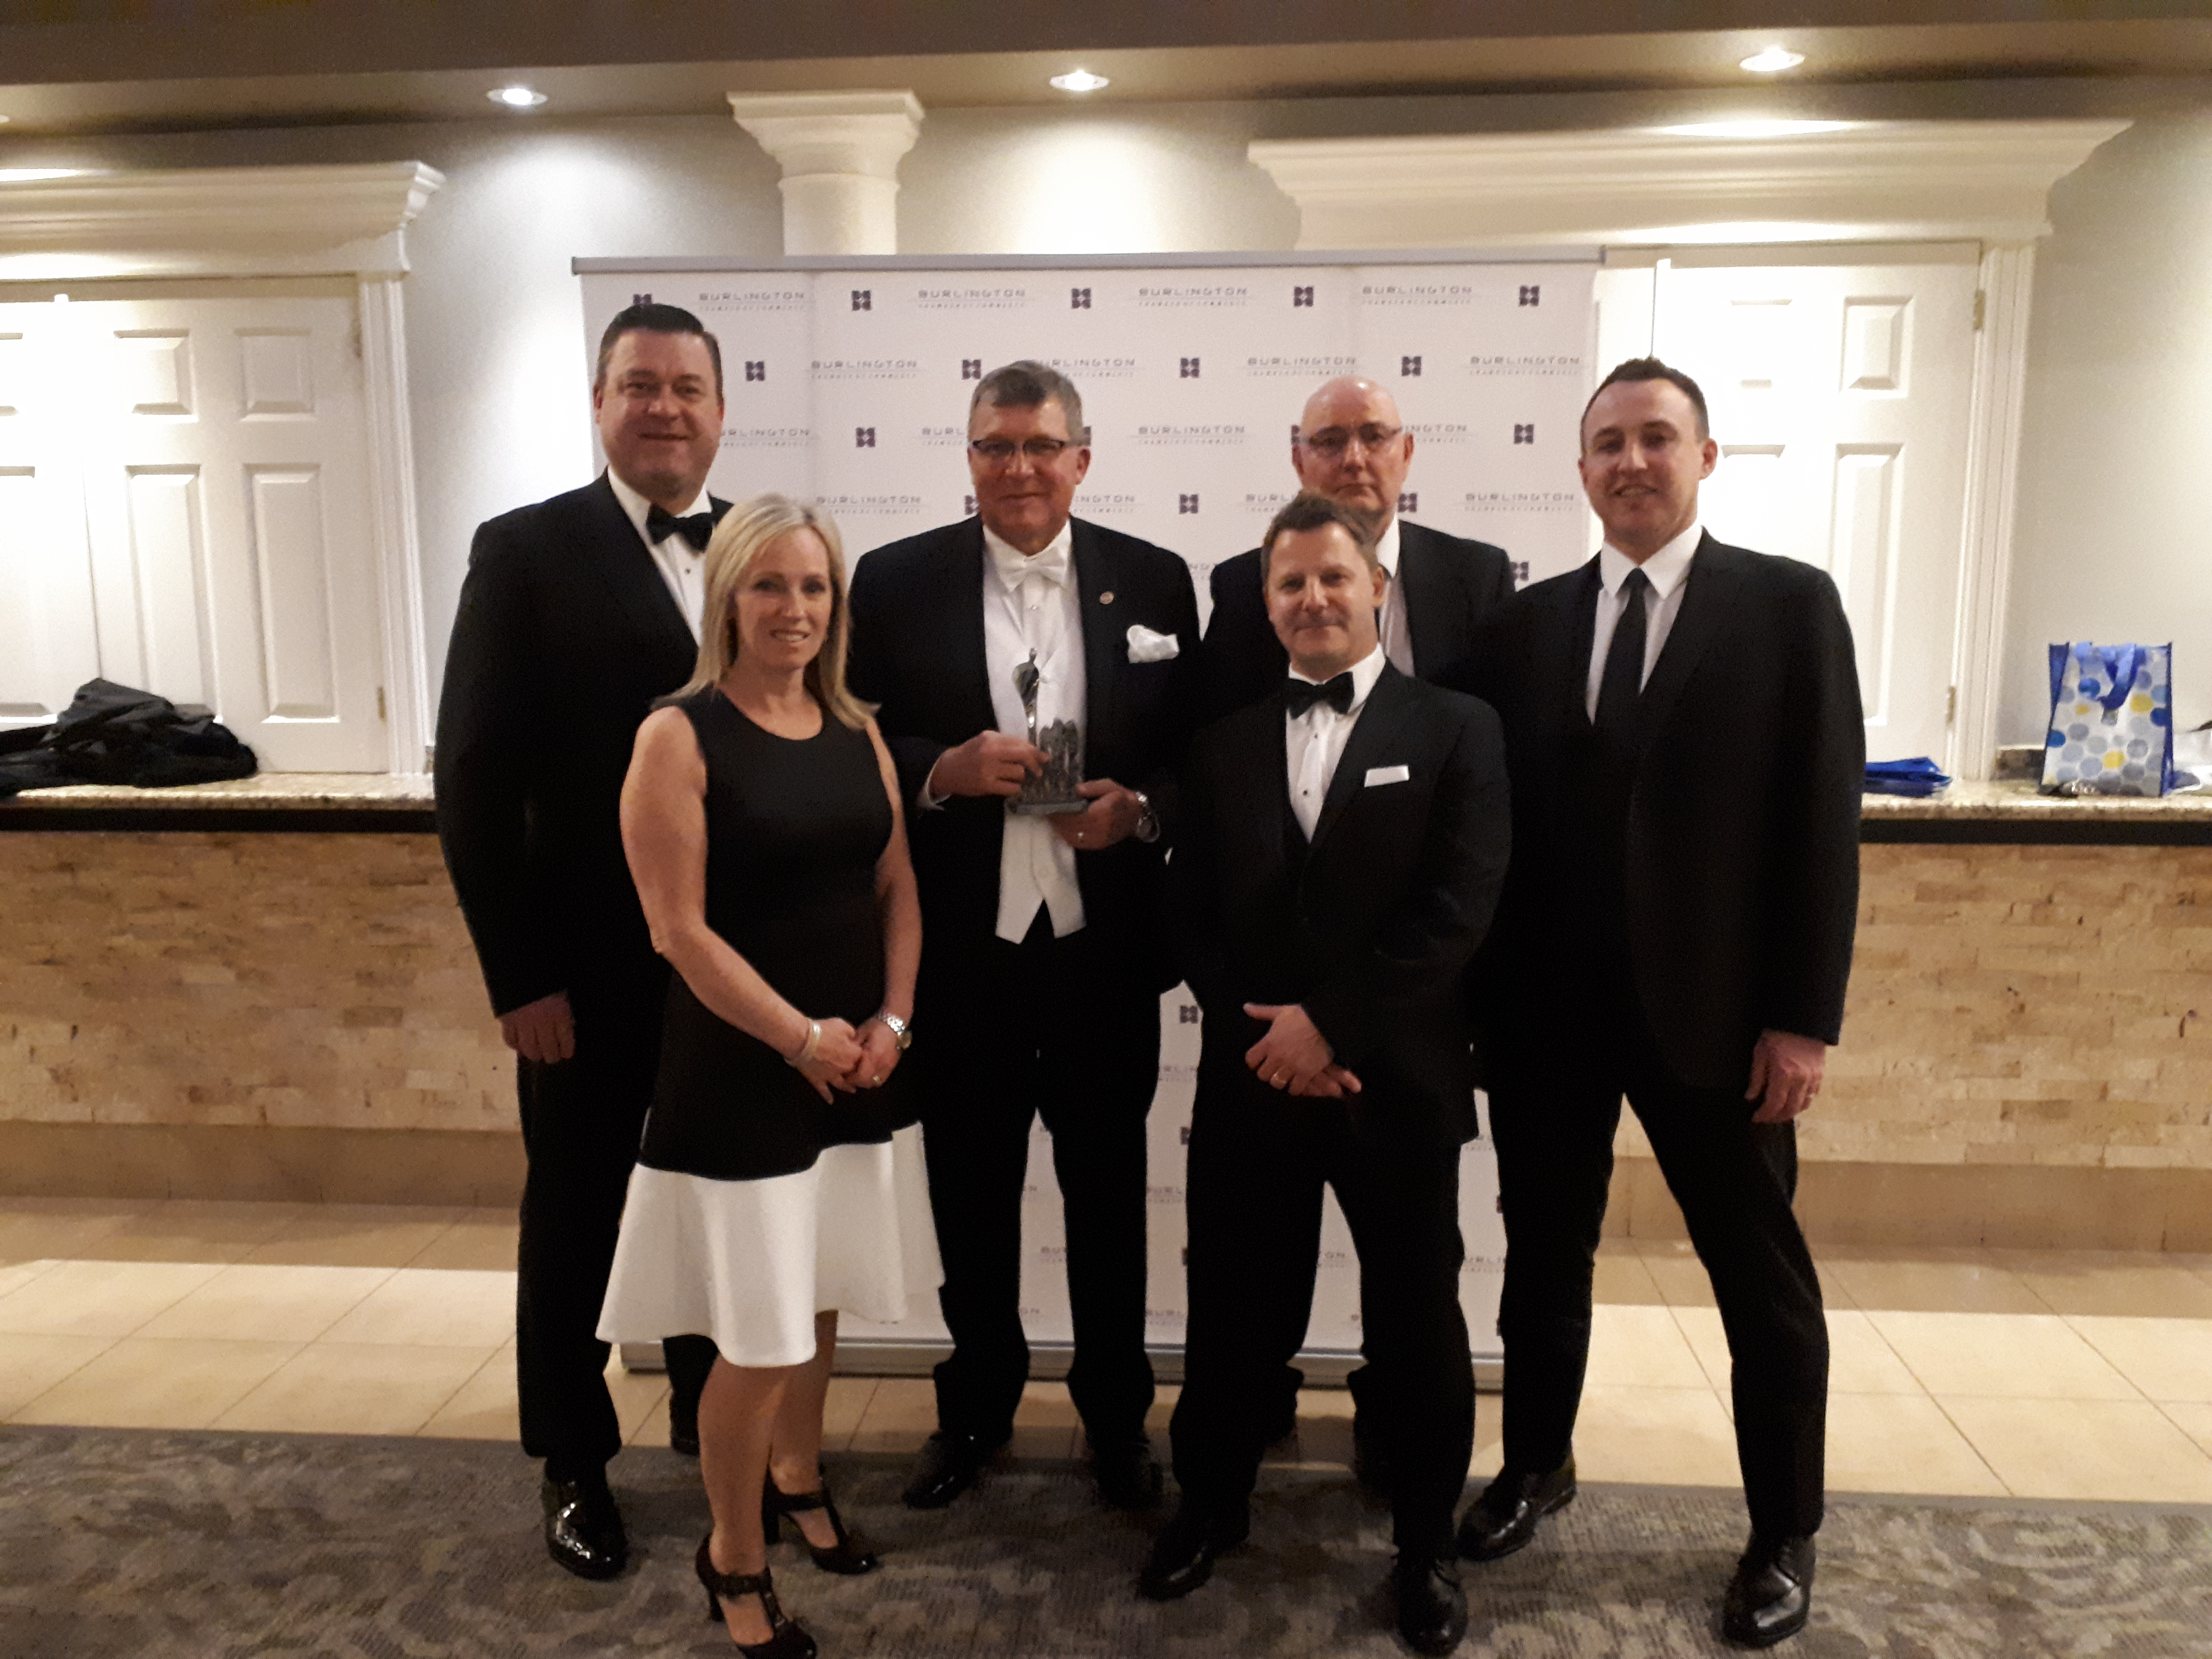 Taylor Moving and Storage Wins Business Excellence Award